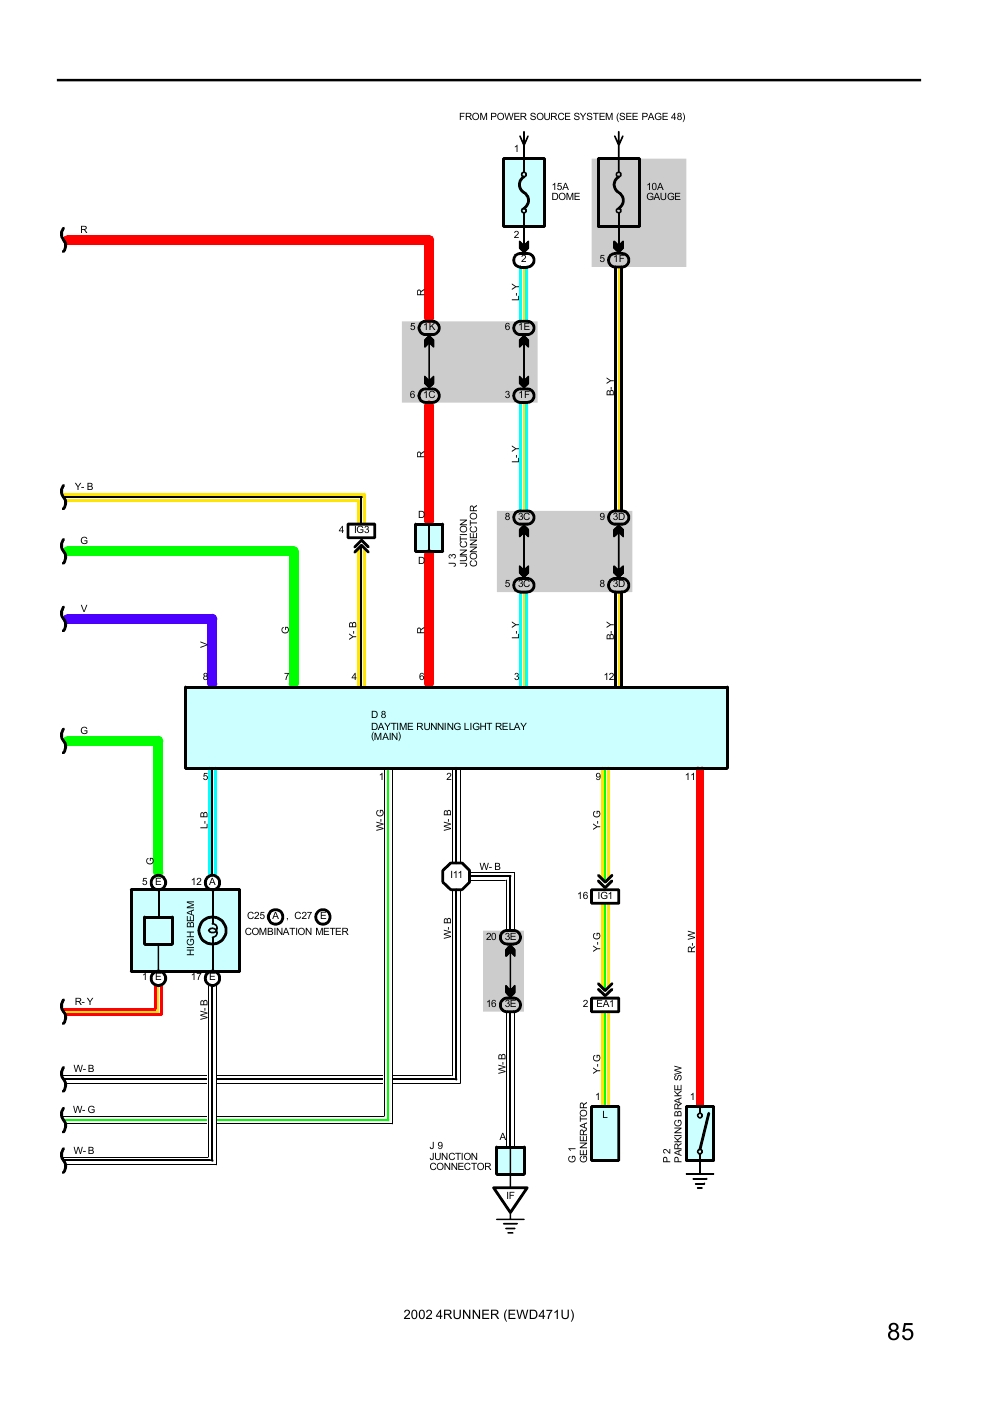 Toyota Headlight Switch Wiring Diagram : Toyota re efi diagram free engine image for user